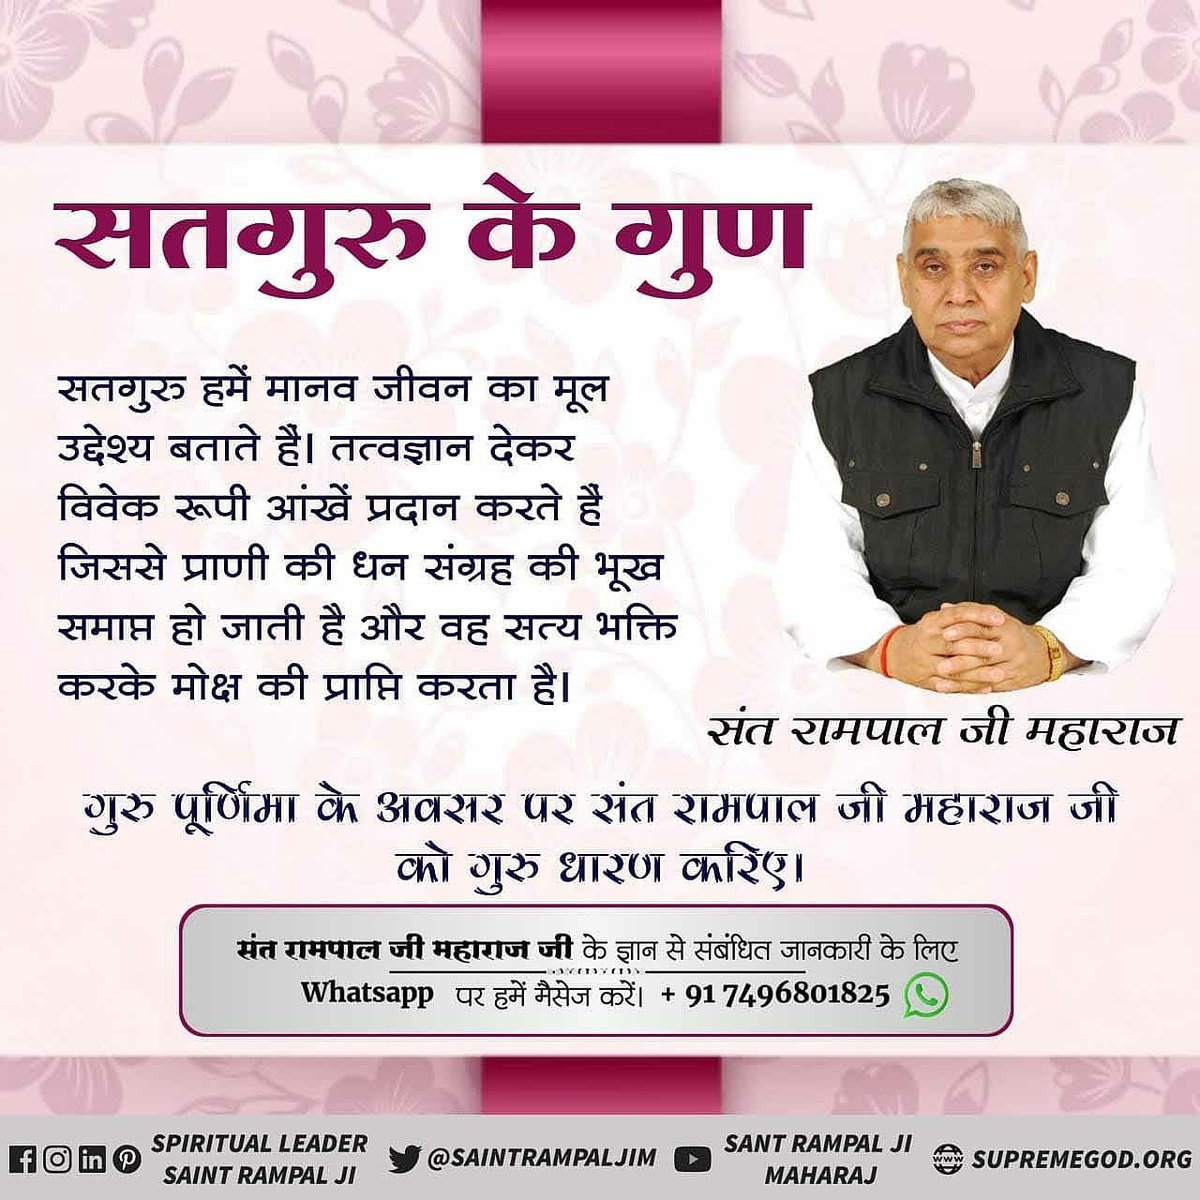 #GodKabir_OceanOfHappiness Our complete salvation is possible only by devotion of God Kabir ! God Kabir lives in the imperishable place Satlok, which is the ocean of happiness,  that is,  there is no sorrow there! <br>http://pic.twitter.com/vHOdrcxHyw